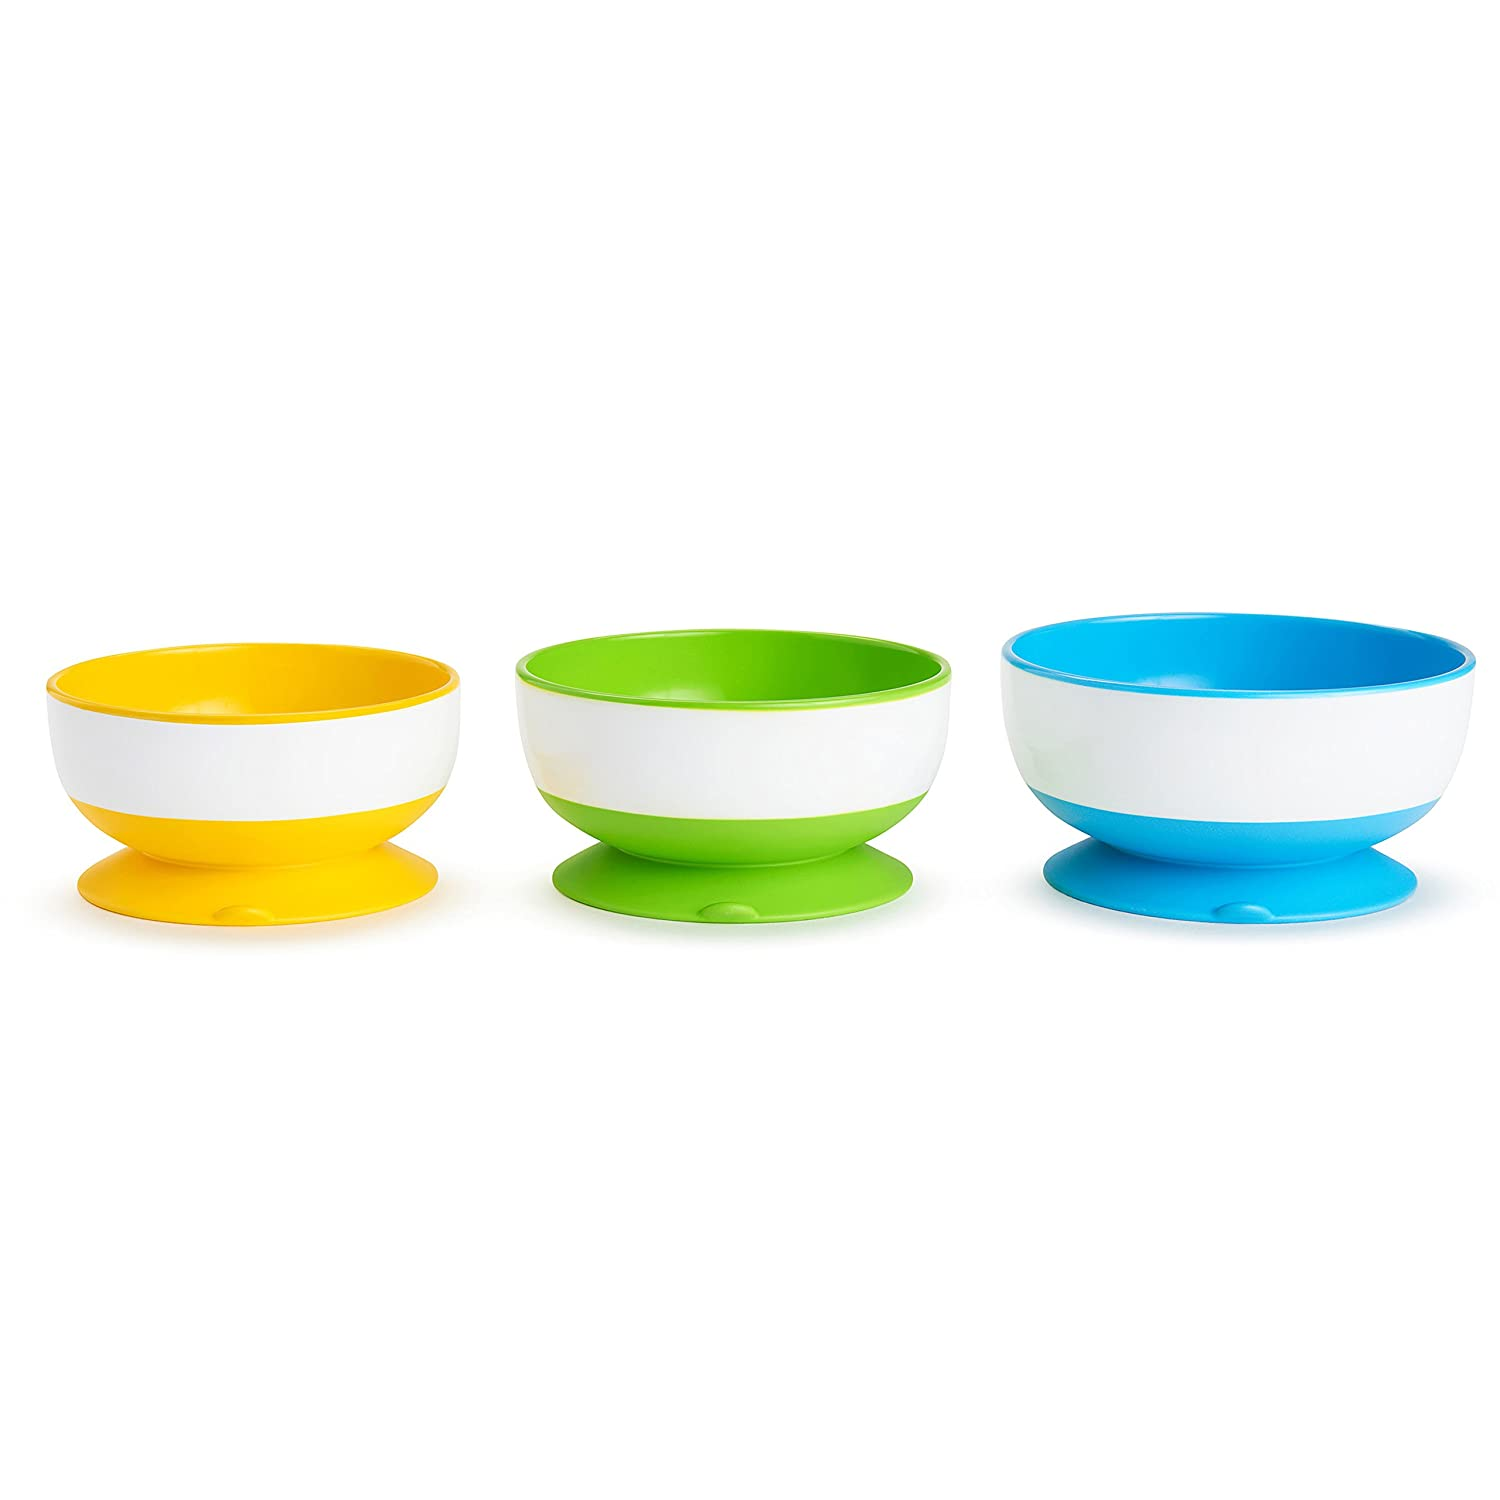 Munchkin Stay Put Suction Bowl, 3 Count 49003